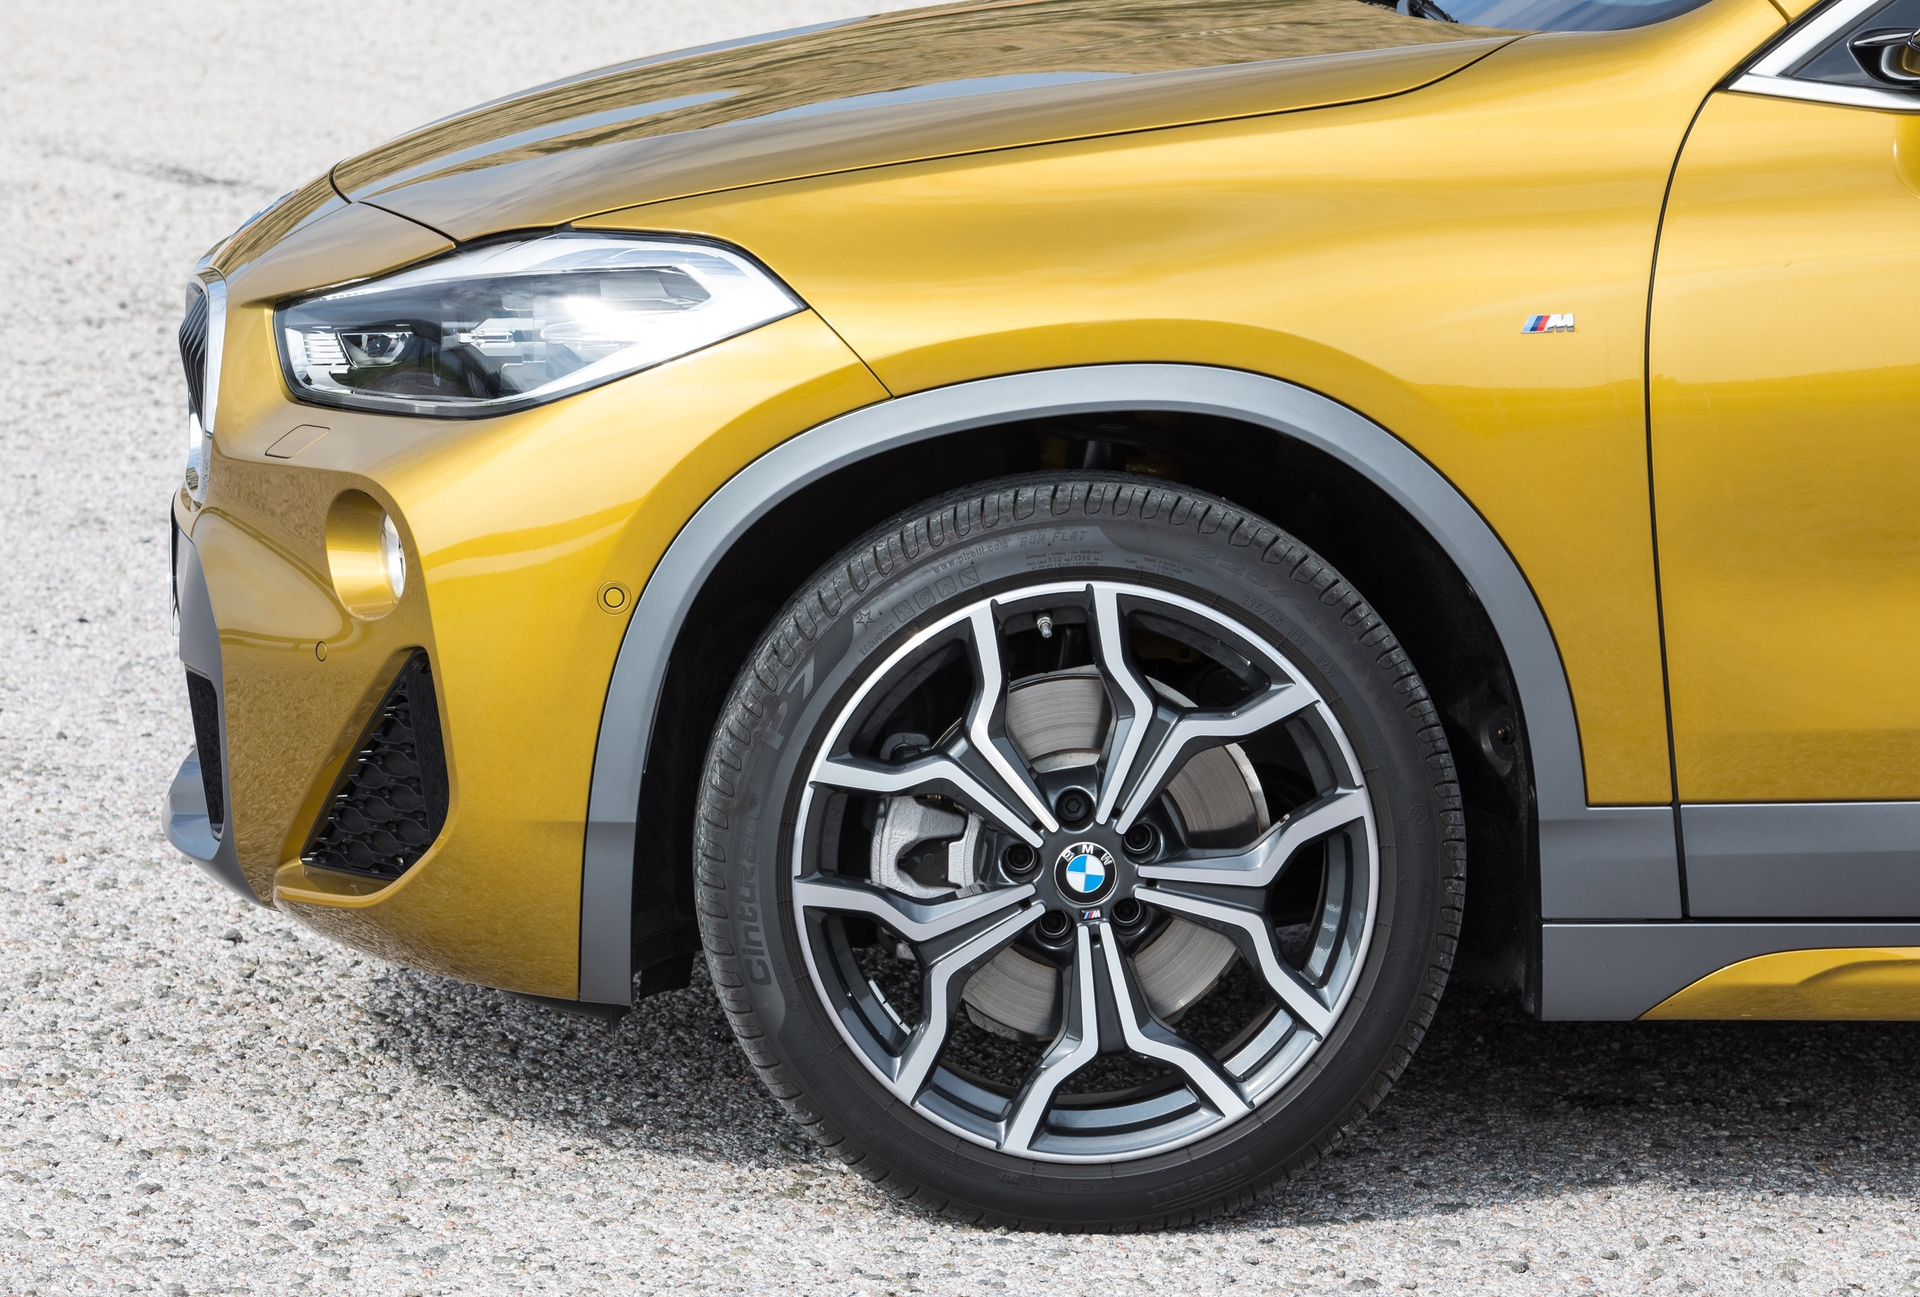 BMW_X2_Greek_presskit_0036